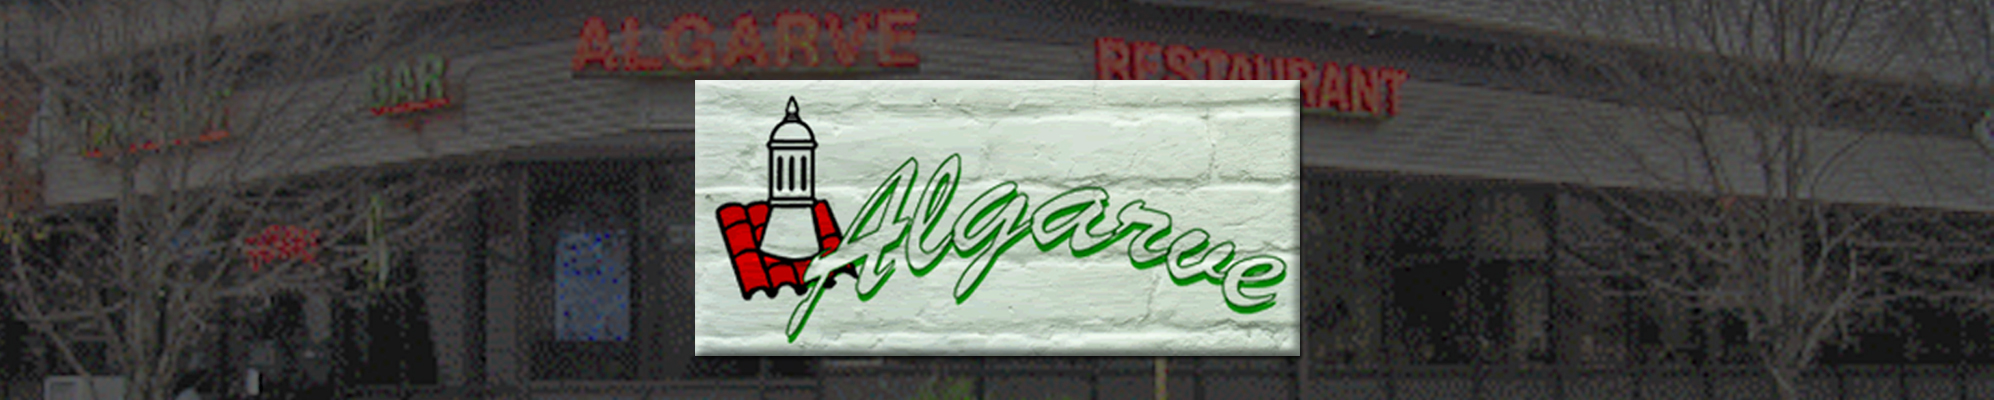 Welcome to <b>Algarv